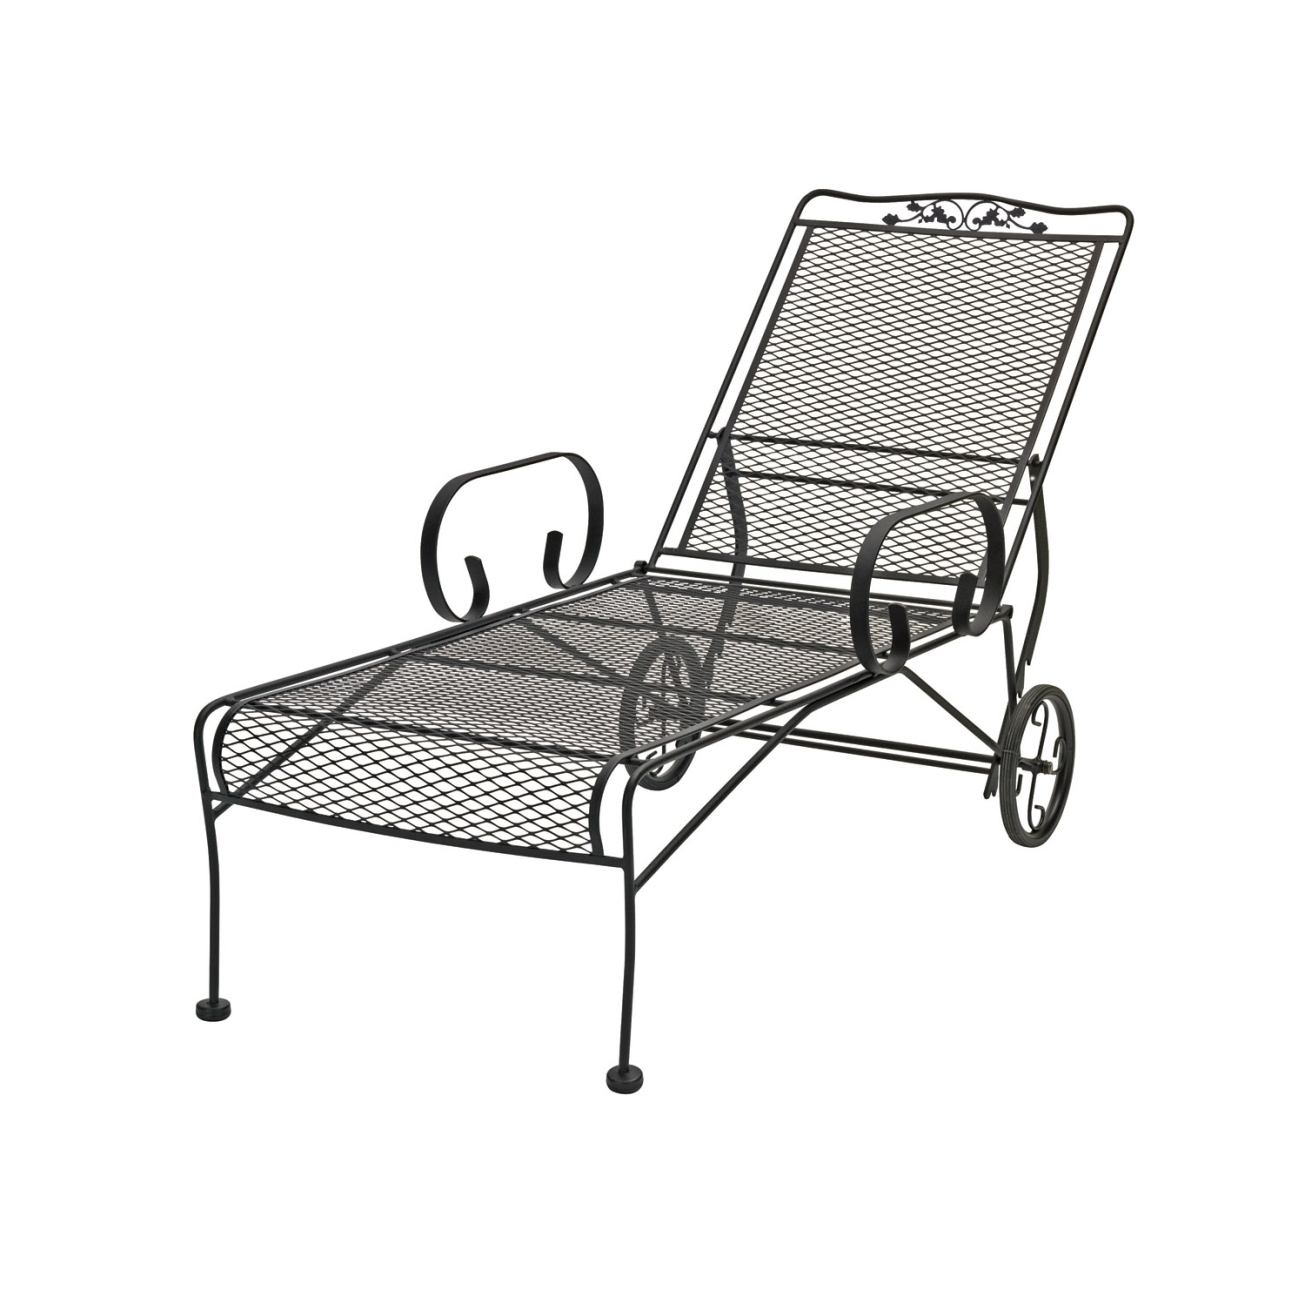 Lounge Chair : Best Garden Furniture Plastic Patio Chairs Resin With Regard To 2017 Lightweight Chaise Lounge Chairs (View 8 of 15)